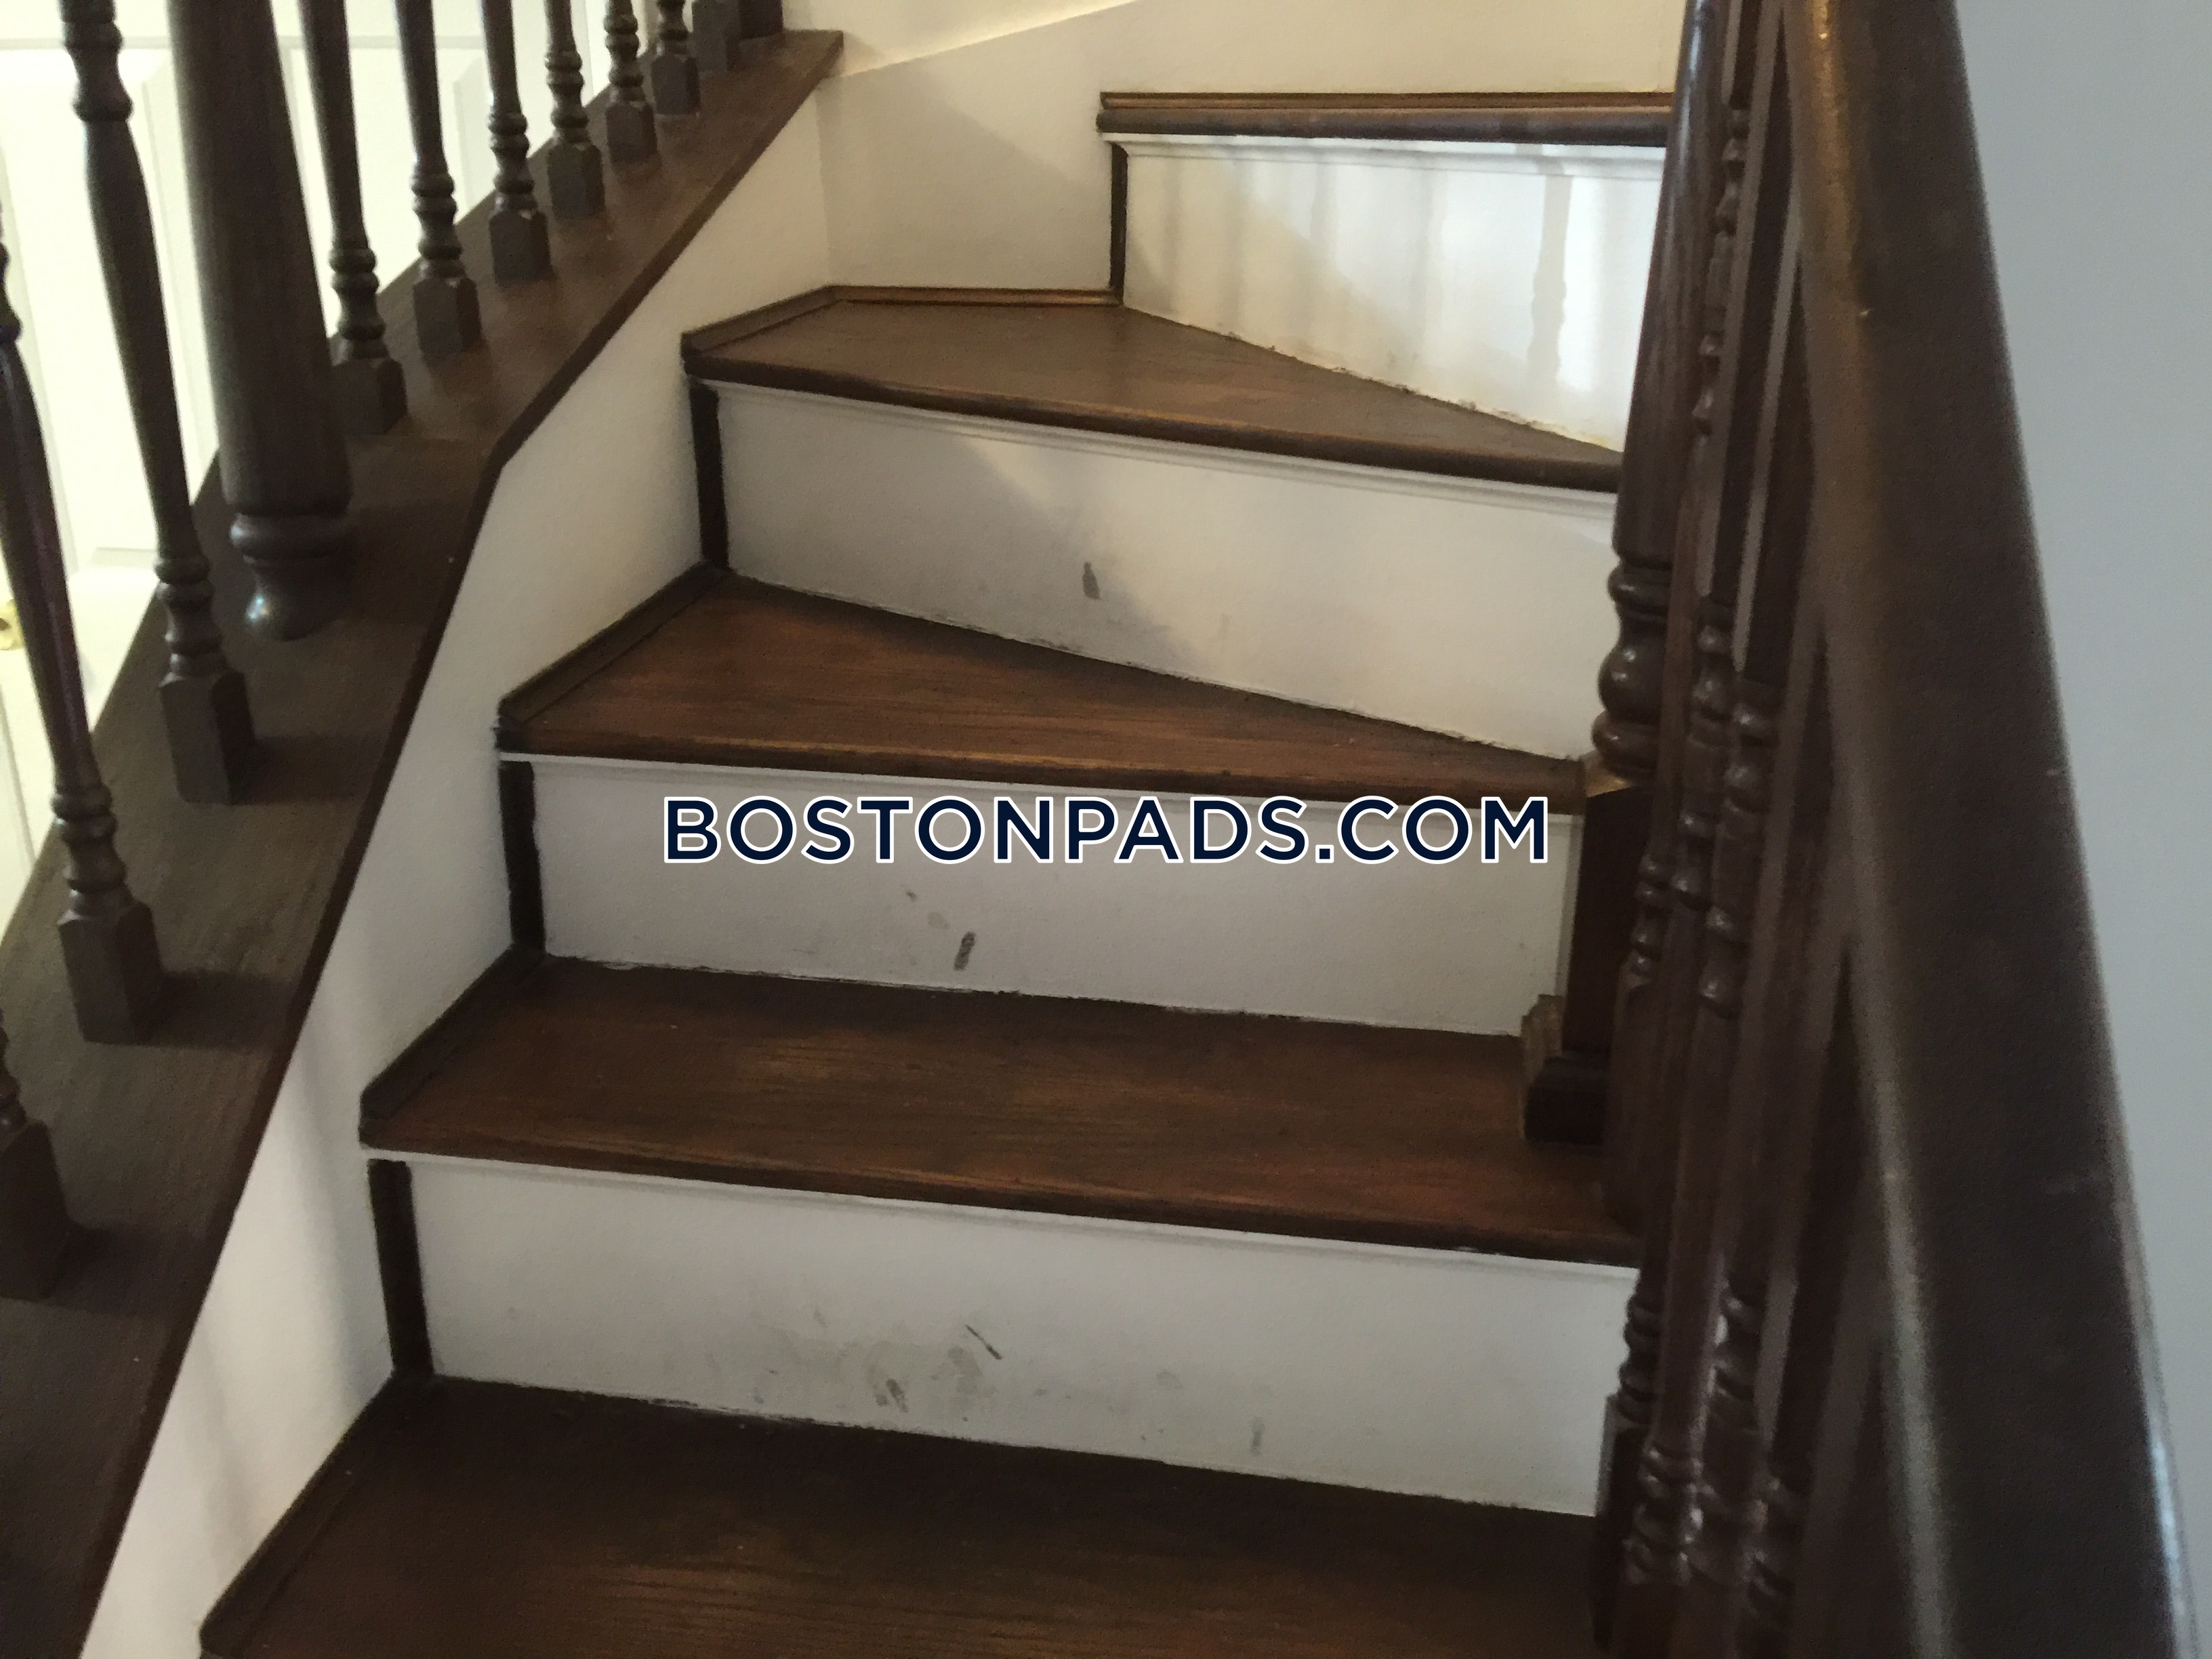 4 Beds 1 Bath - Boston - Northeastern/symphony $4,700